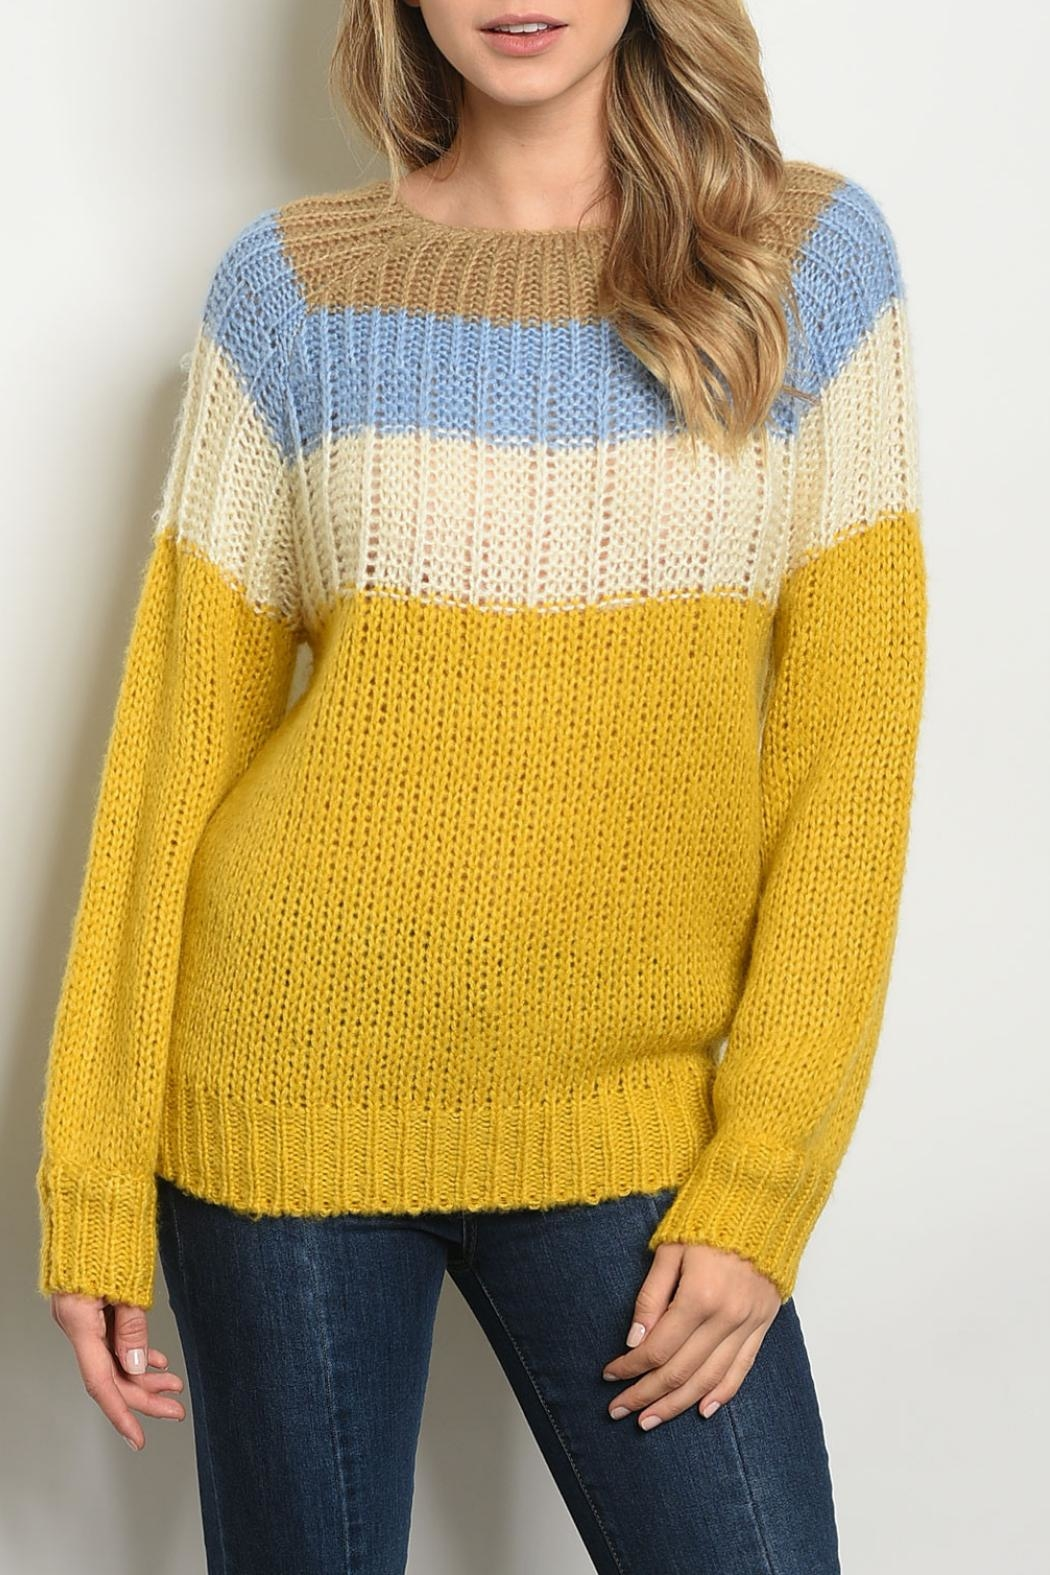 O & O Blue Mustard Sweater - Main Image